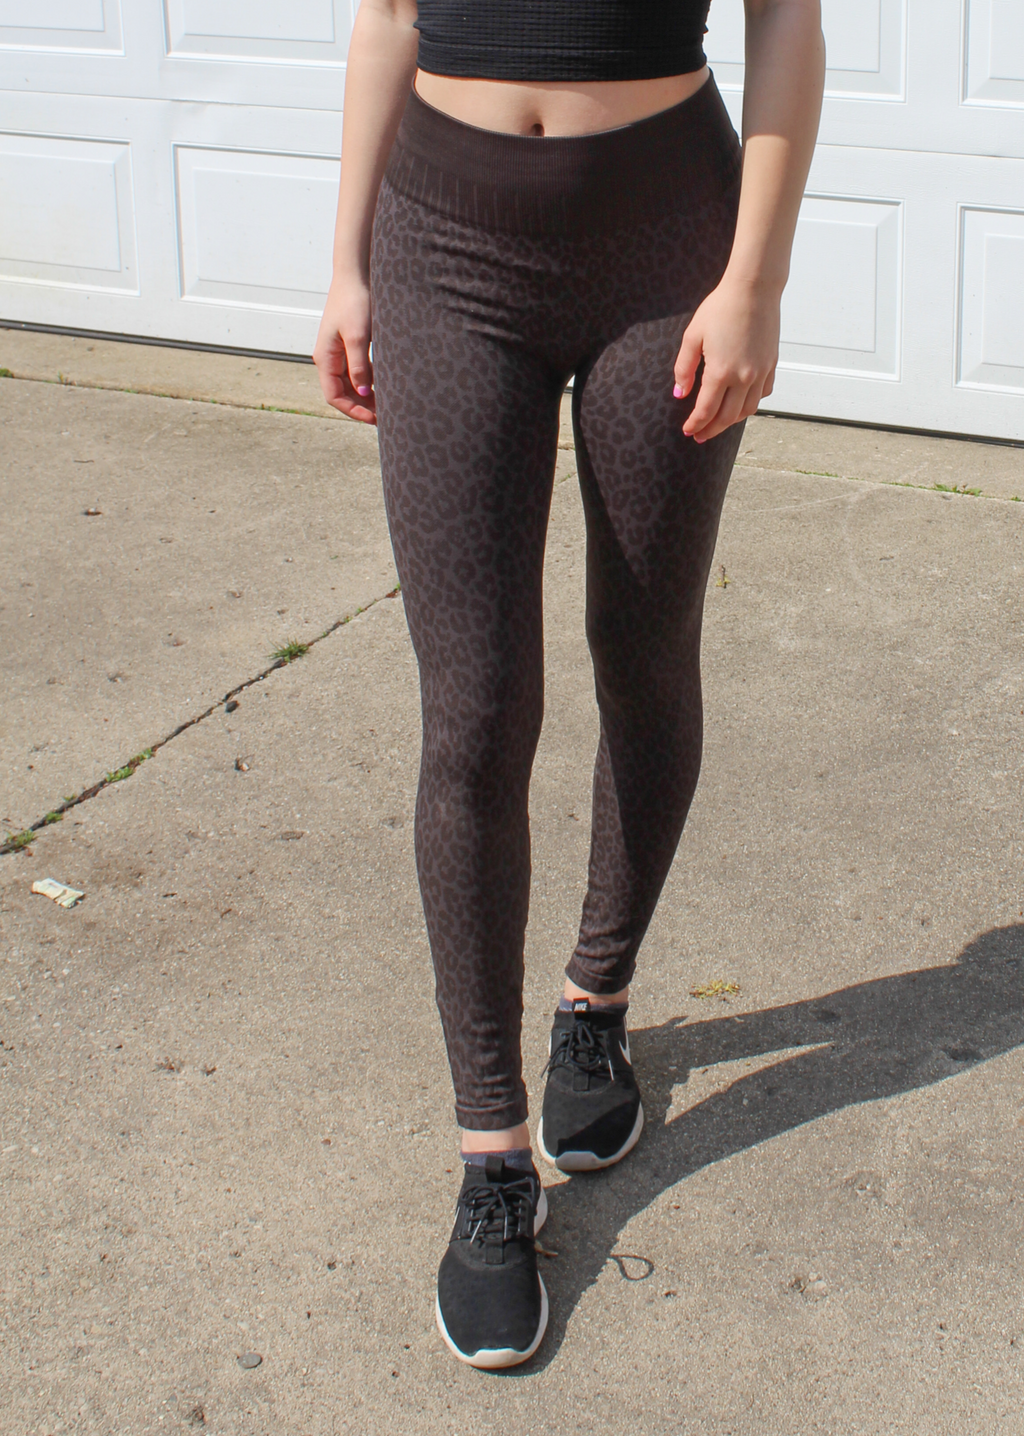 Cheetah Girl Leggings ★ Charcoal - Rock N Rags